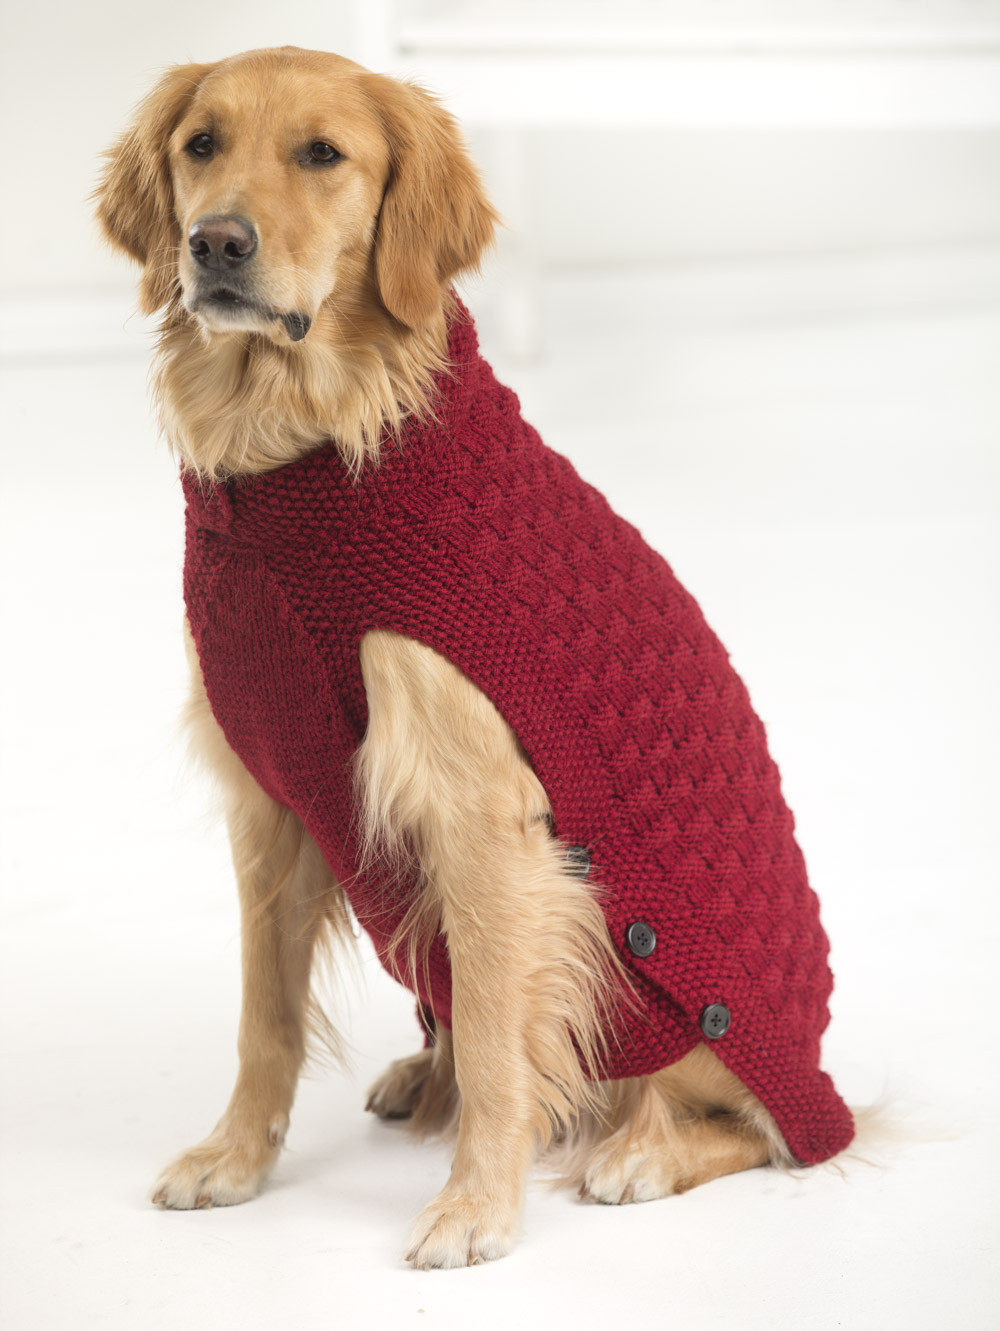 Dog Sweater Patterns Beautiful Crochet Dog Sweater Pattern for Large Dogs Crochet and Knit Of Unique 41 Photos Dog Sweater Patterns